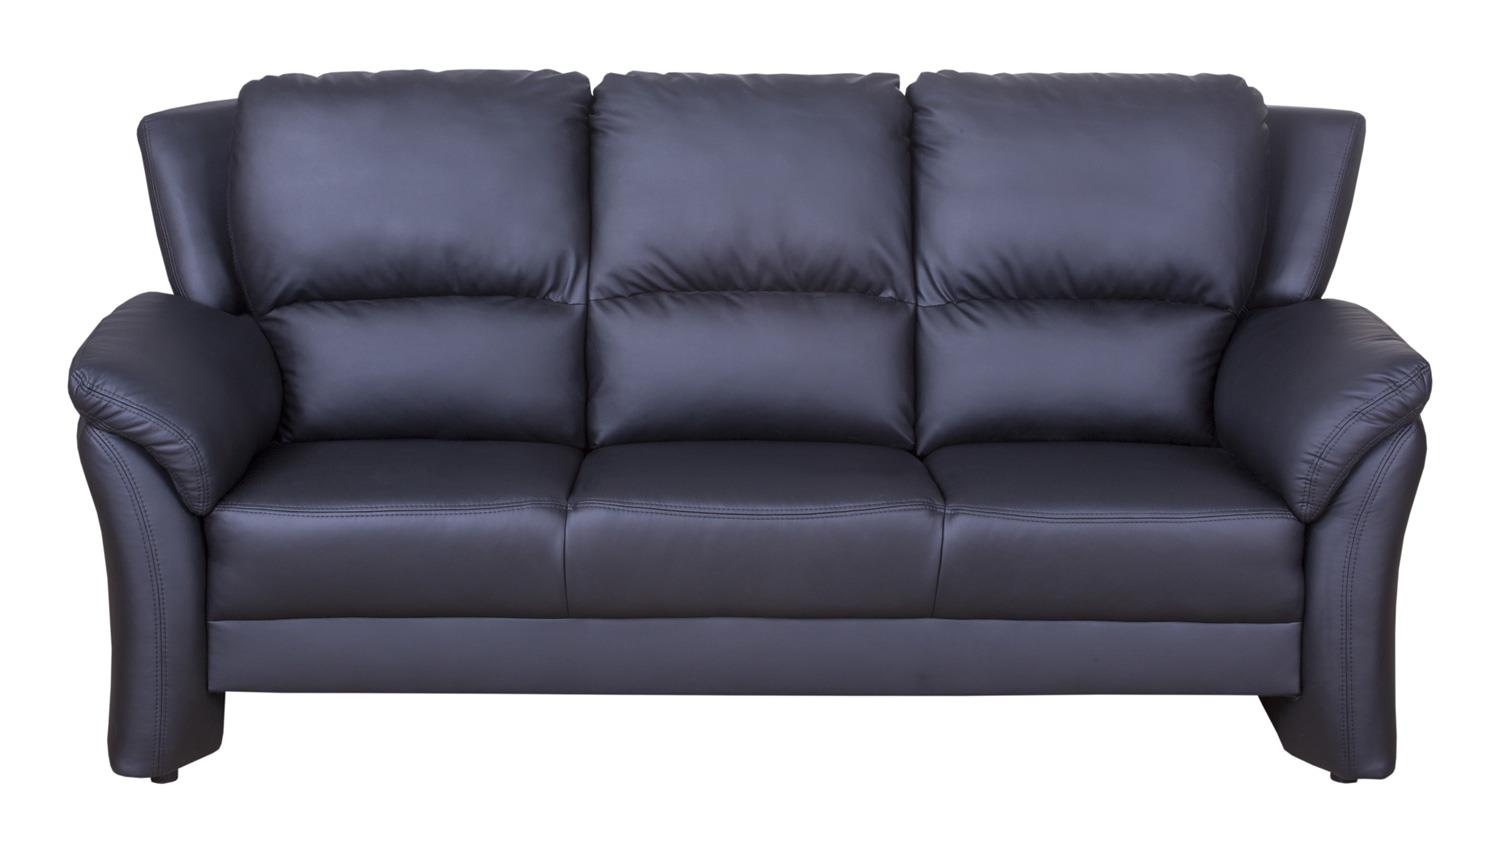 Sofa 3 sitzer pisa couch polsterm bel in schwarz lederlook for 3 on a couch